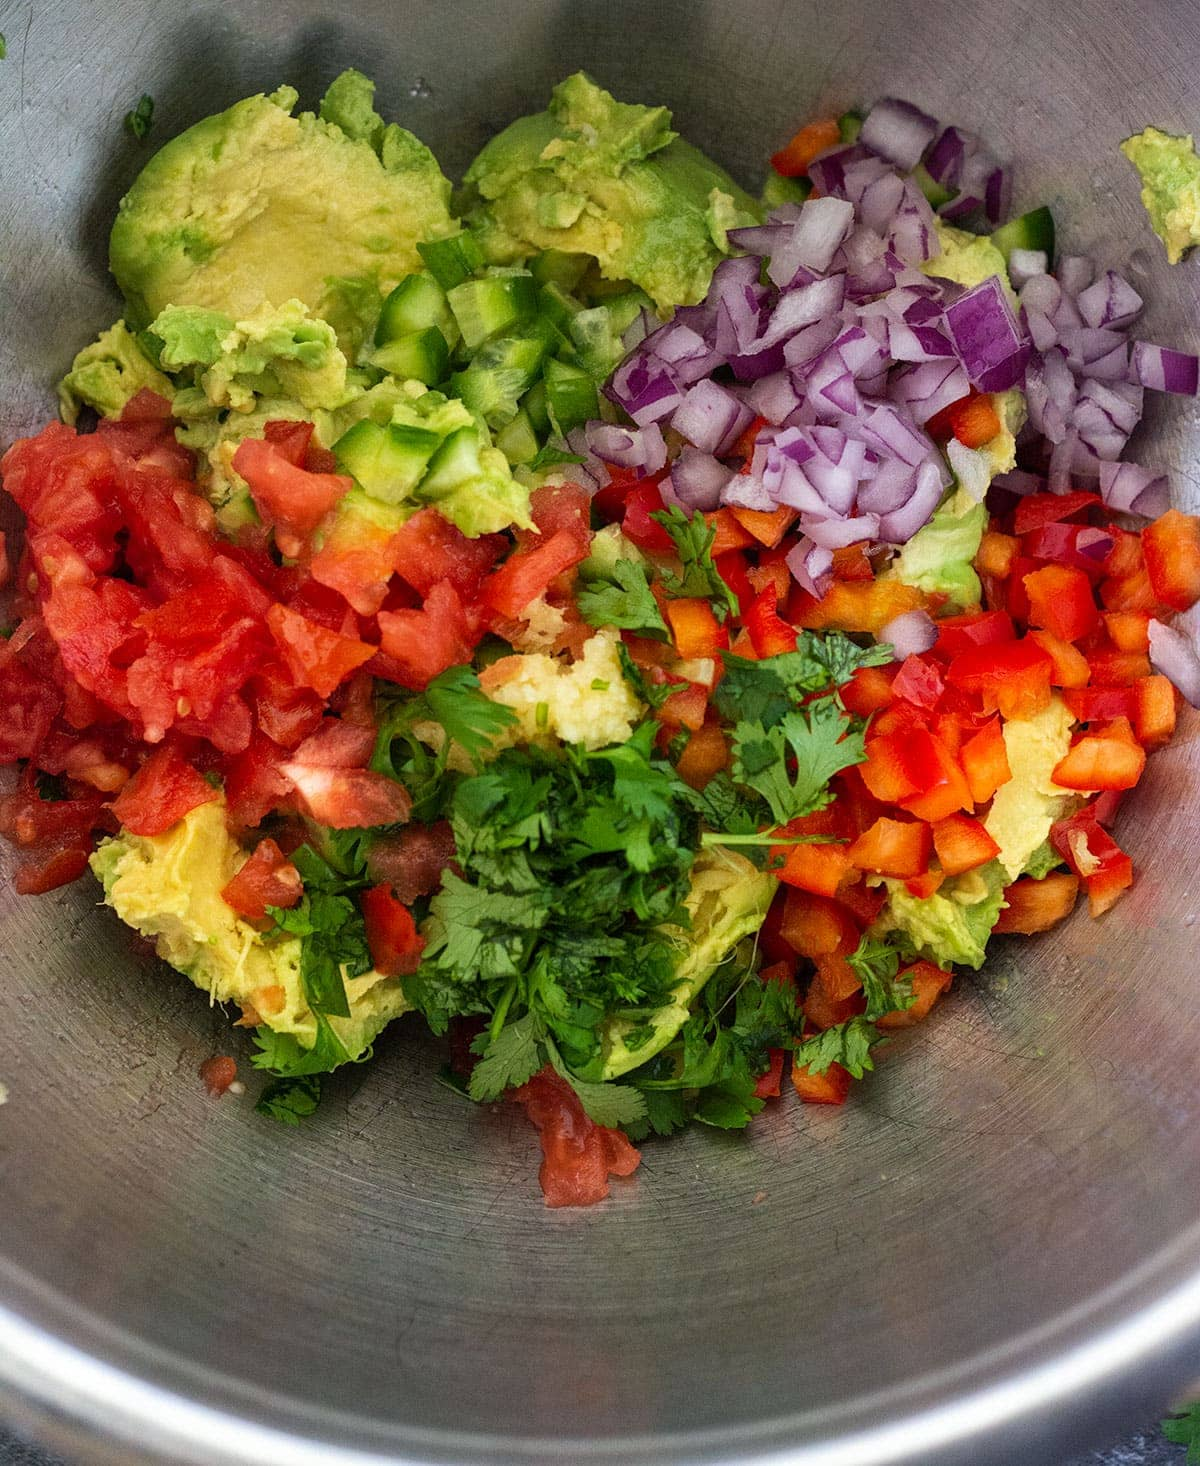 Chopped ingredients for loaded guacamole in a silver bowl